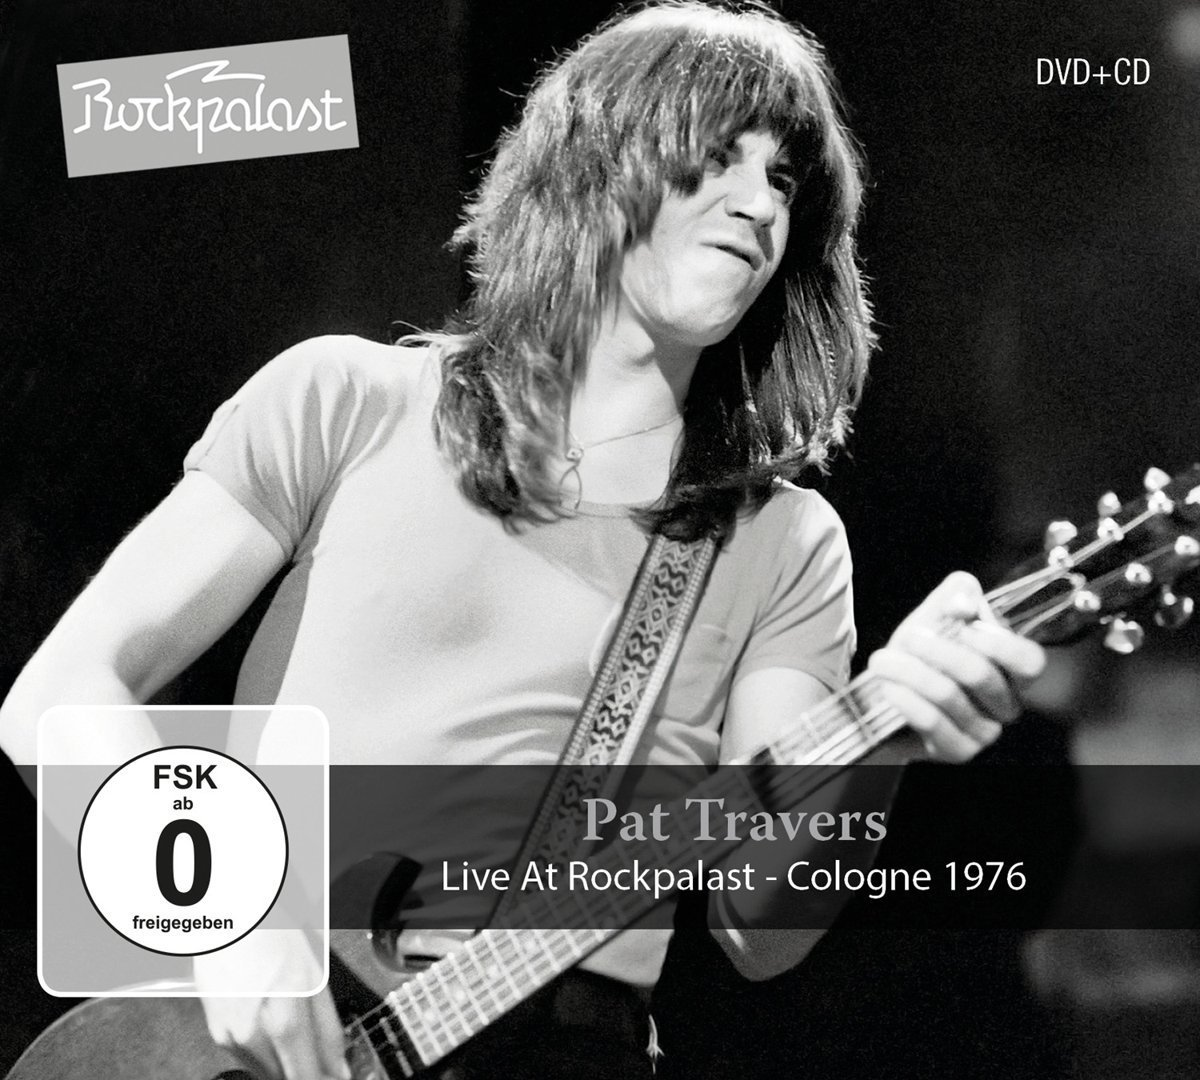 Live At Rockpalast: Cologne 1976 (CD+DVD) by MIG (Made In Germany)